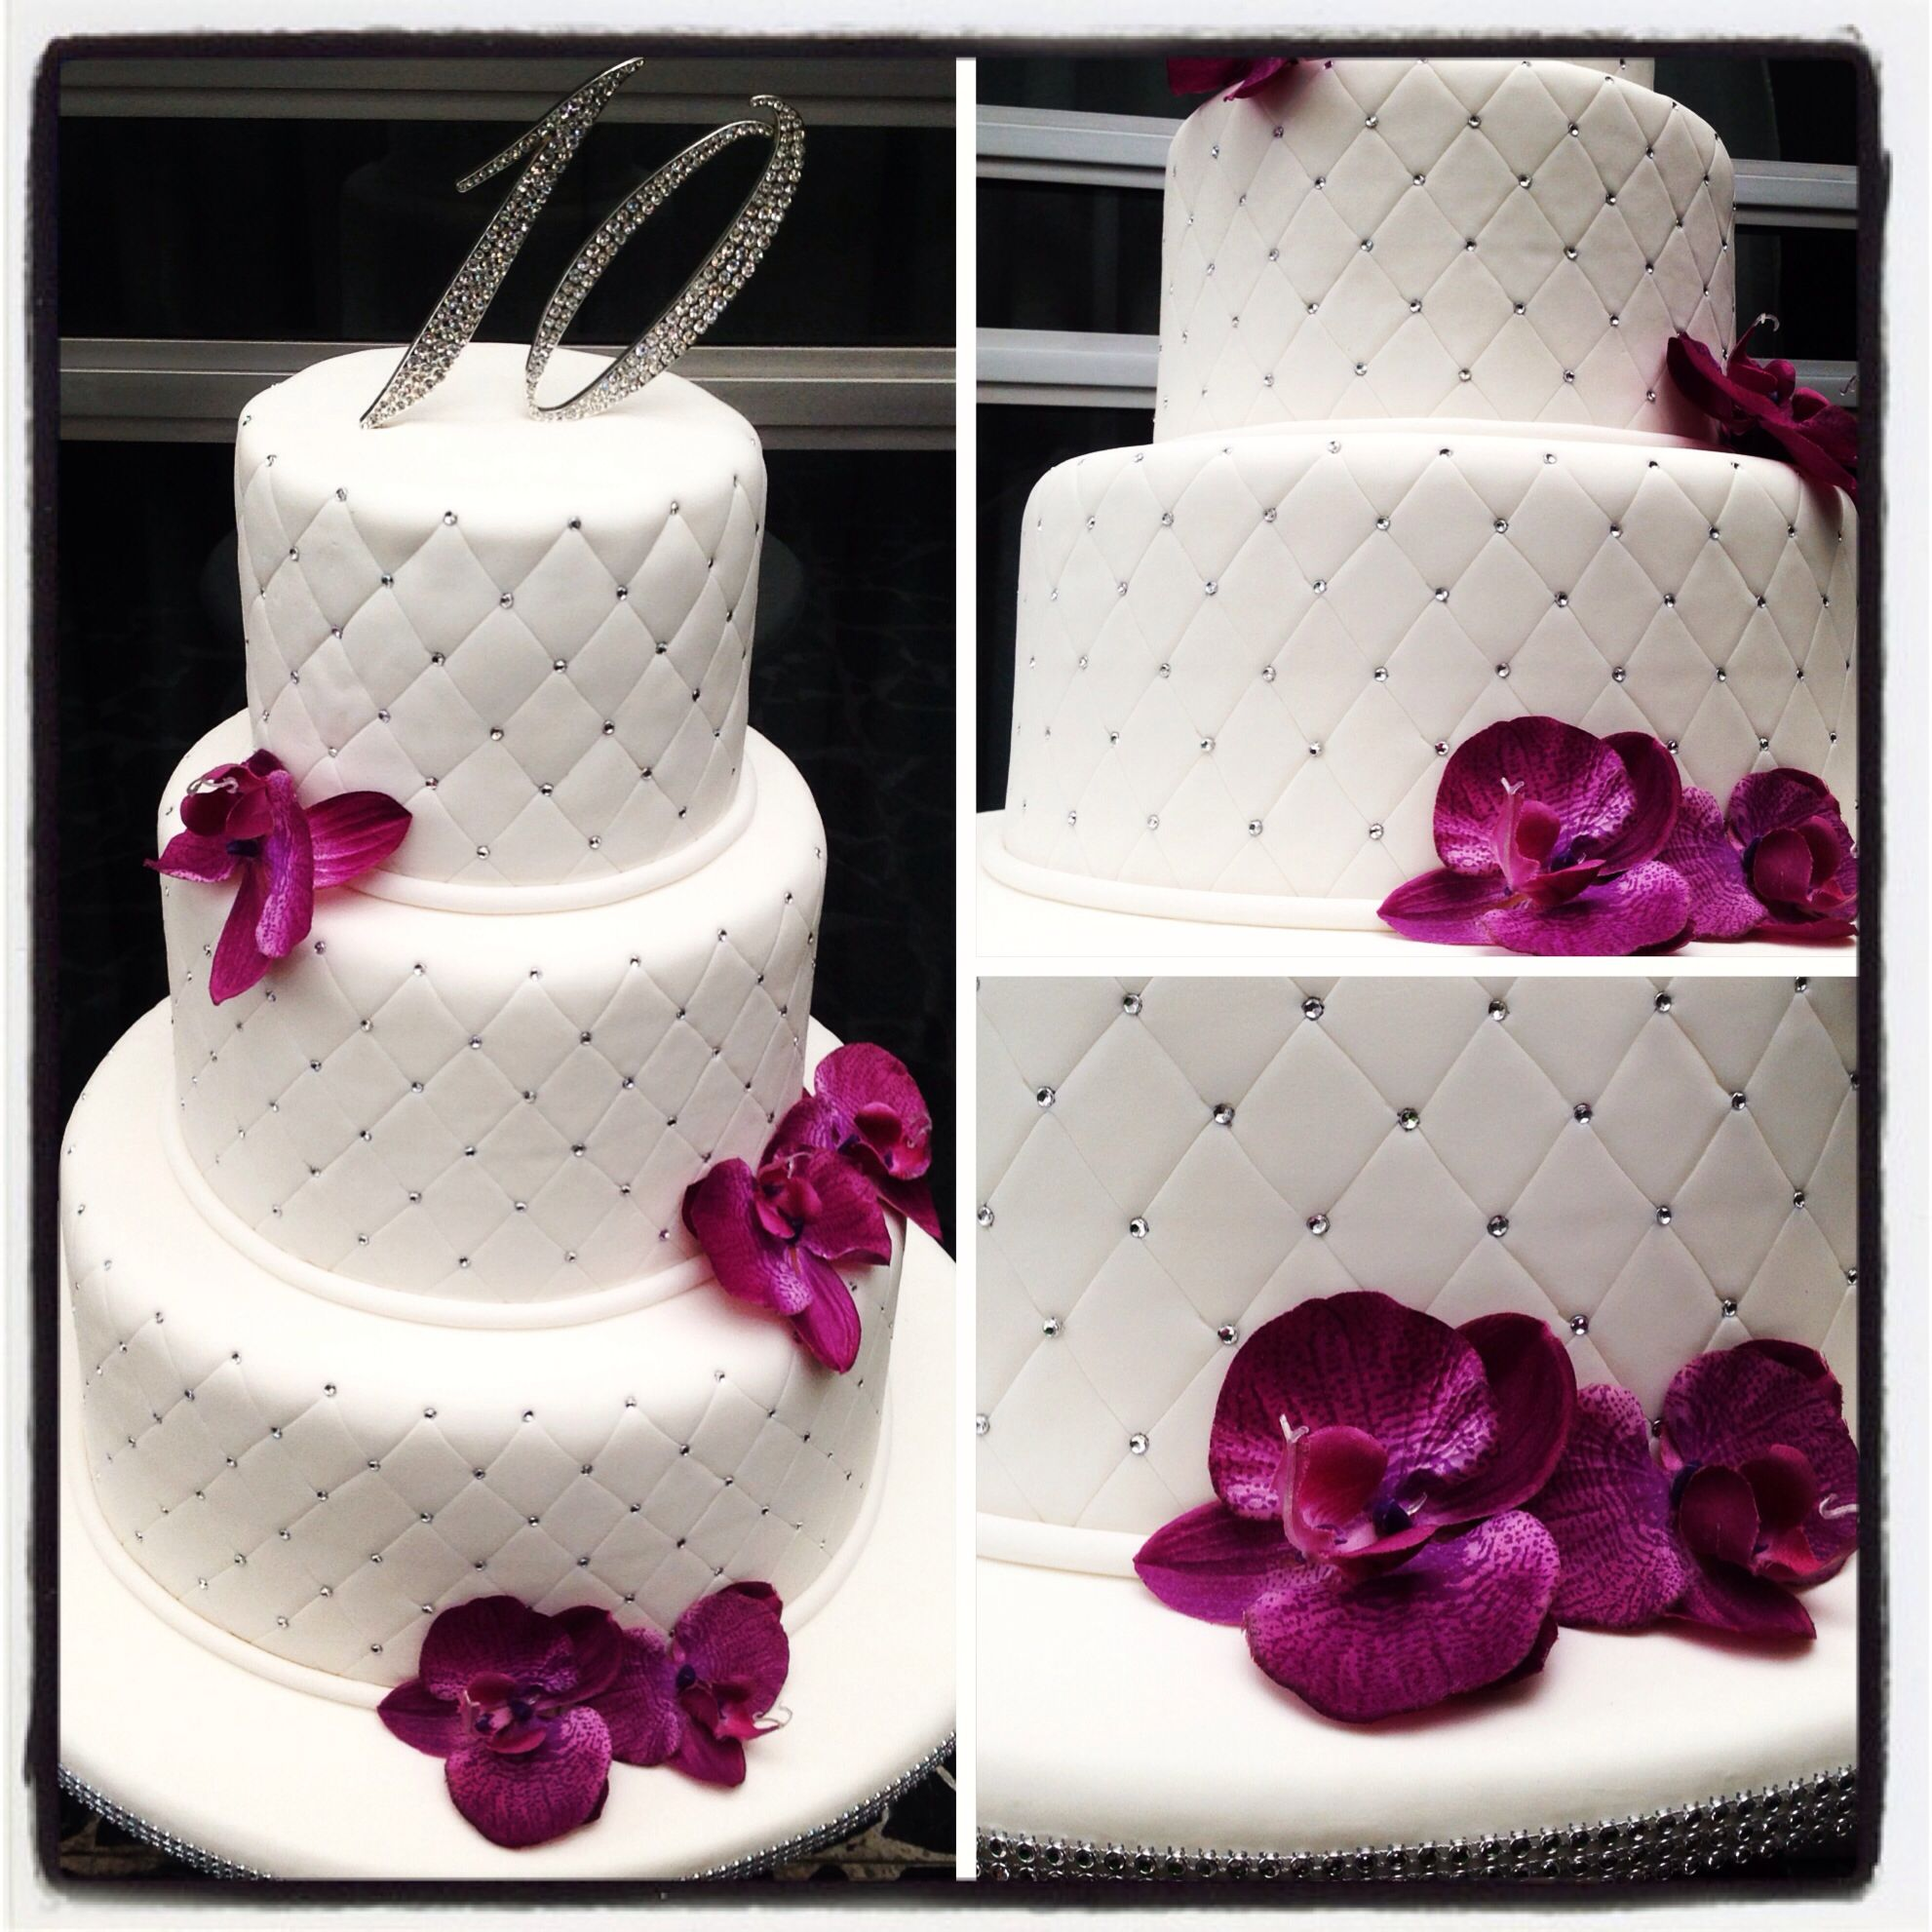 10th Wedding Anniversary Party Ideas: 10th Anniversary Cake With Purple Orchids